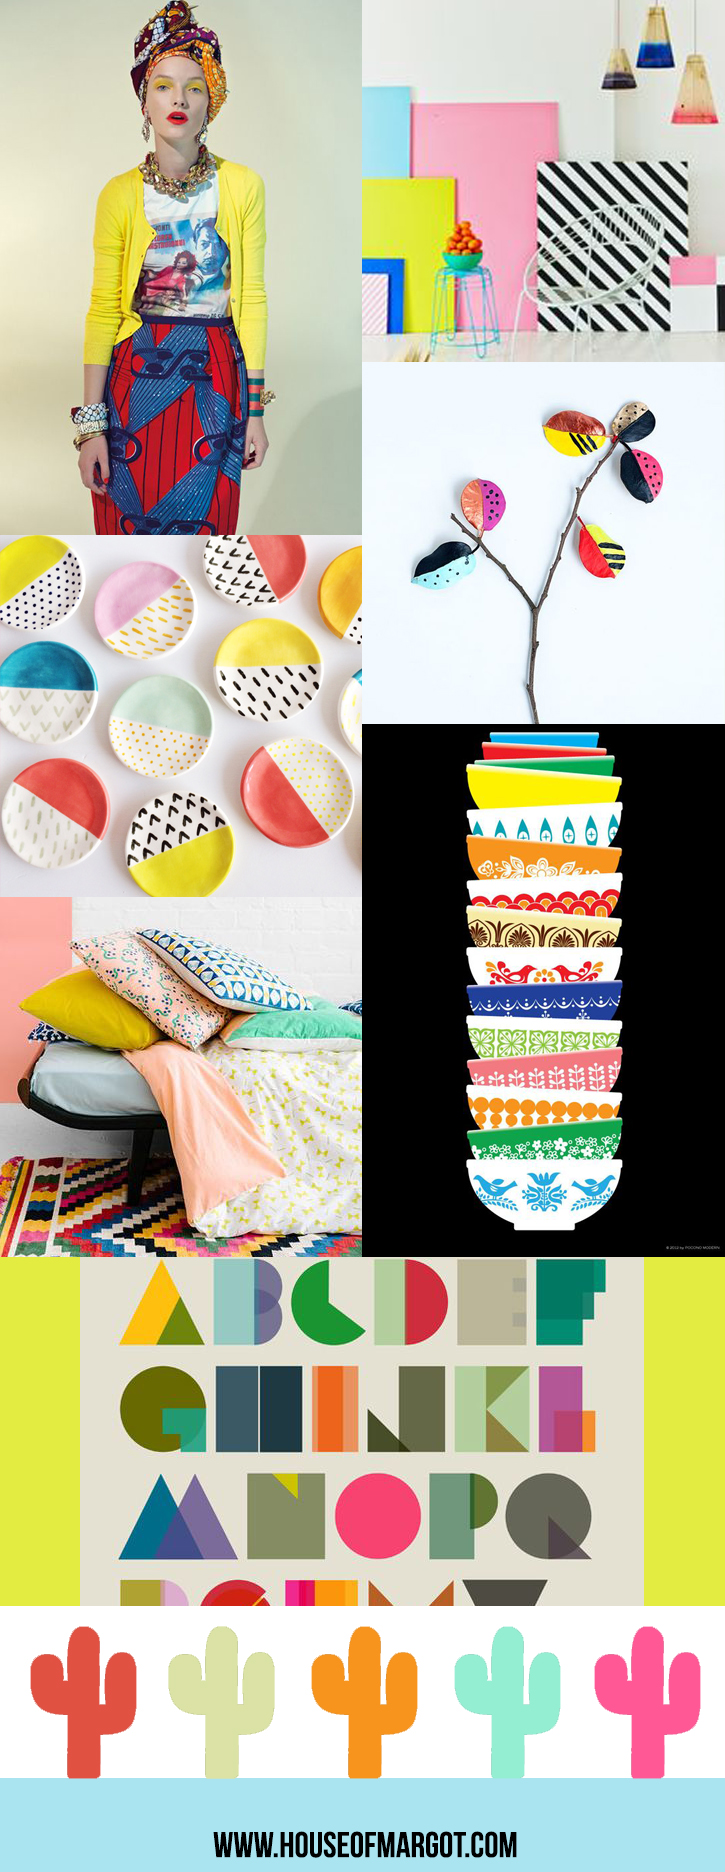 Inspired by Eclectic mood board by House of Margot | neon colors | cacti | block typography | pyrex | stripes | bold design | color combo | color inspiration